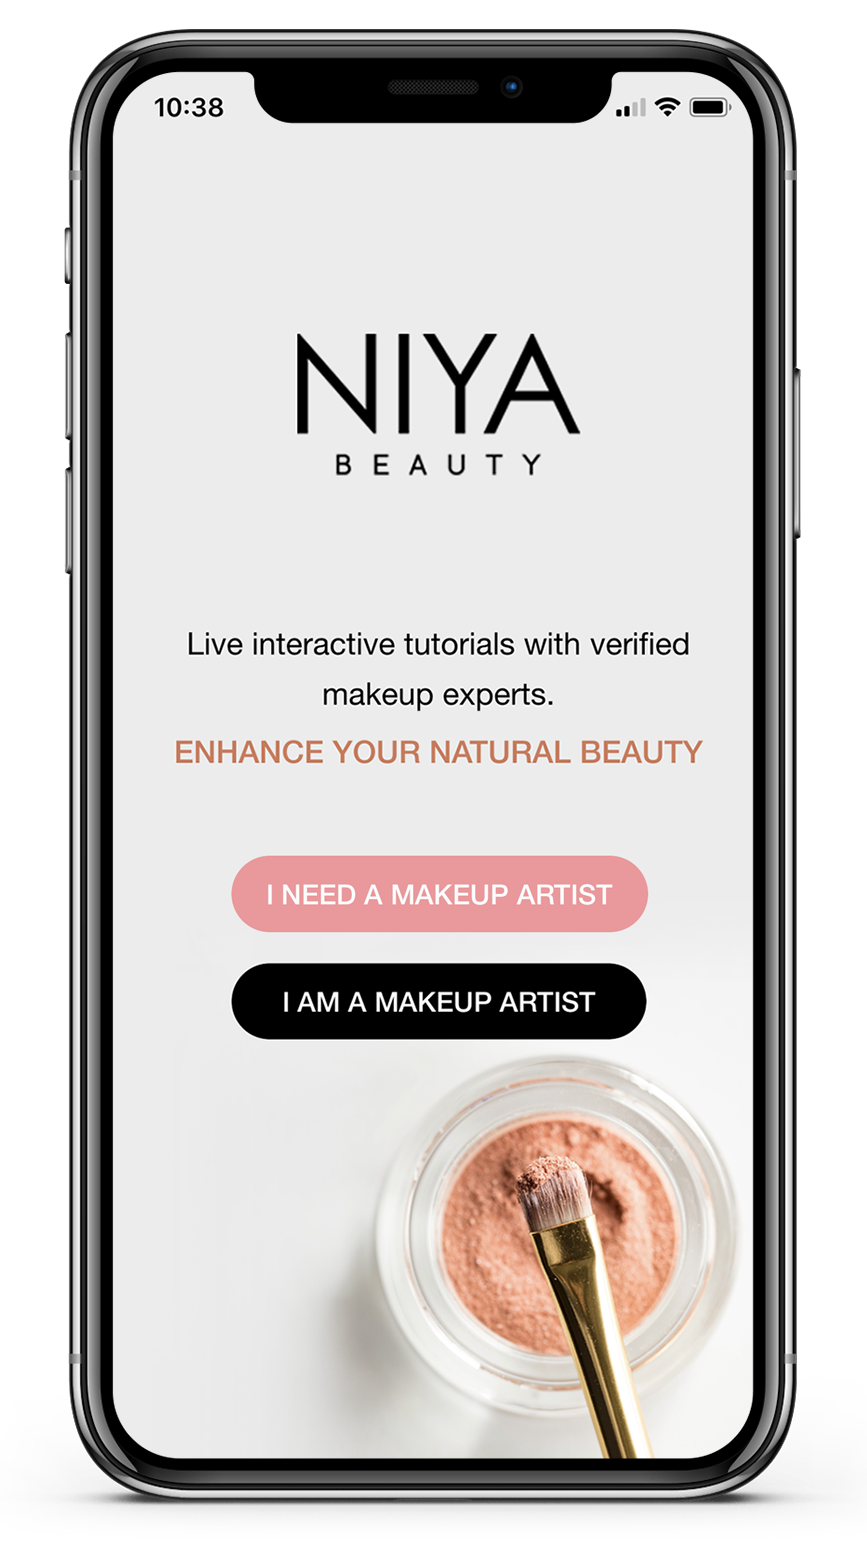 NIYA BEAUTY APP